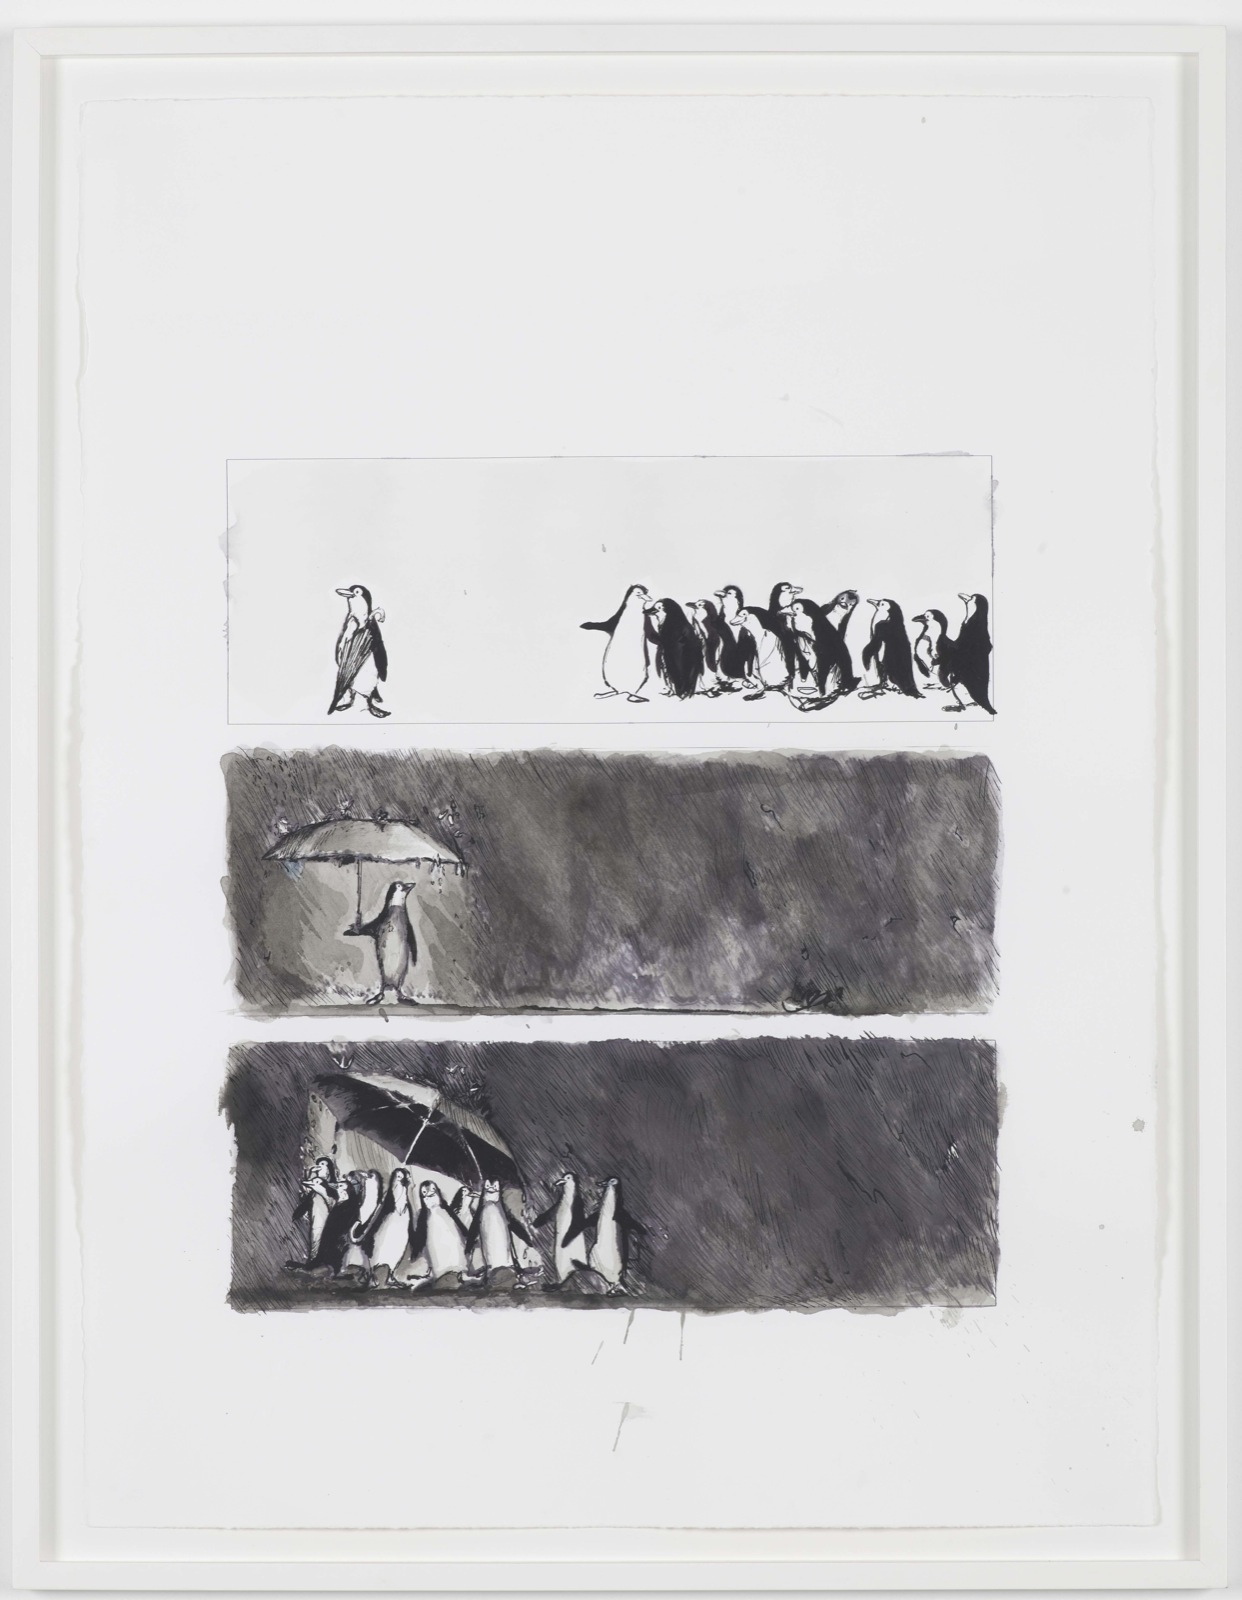 Philippe Parreno, Sono Uguali e Sono Divers, 2009, ink on paper, 76 x 57 cm